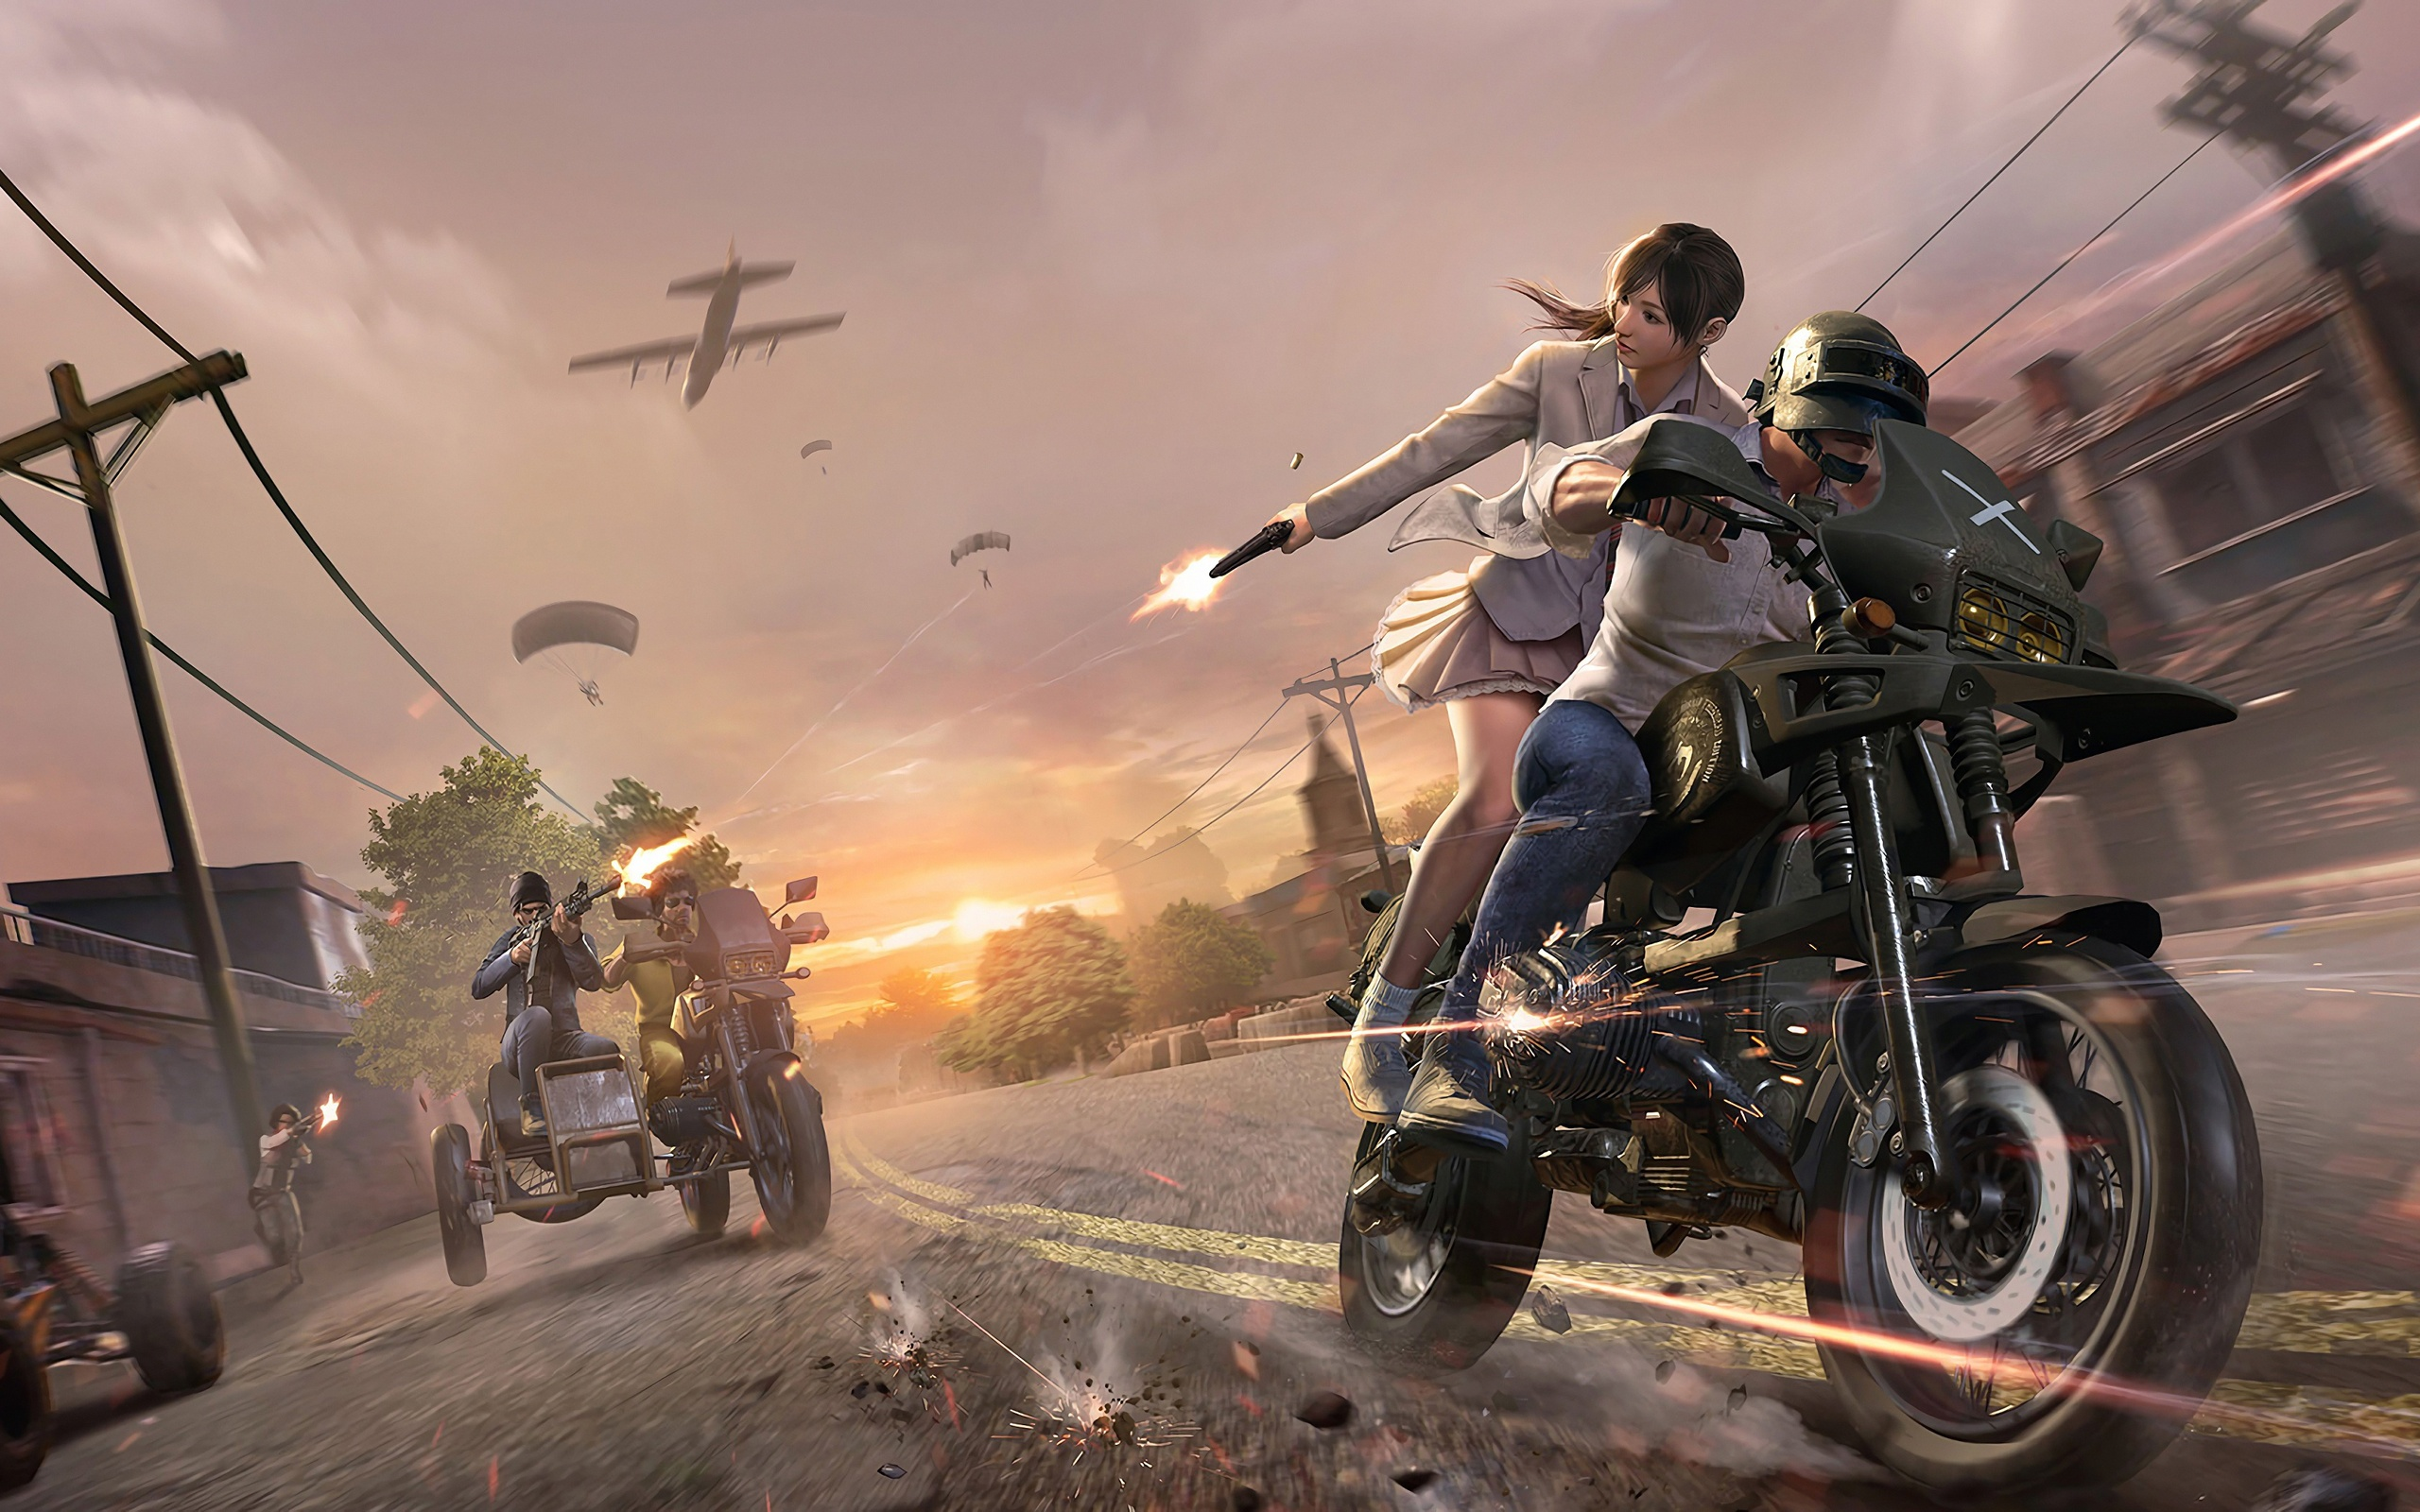 2048x1152 Pubg Bike Rider 4k 2048x1152 Resolution Hd 4k: 2560x1600 PUBG Helmet Guy With Girl 4k 2560x1600